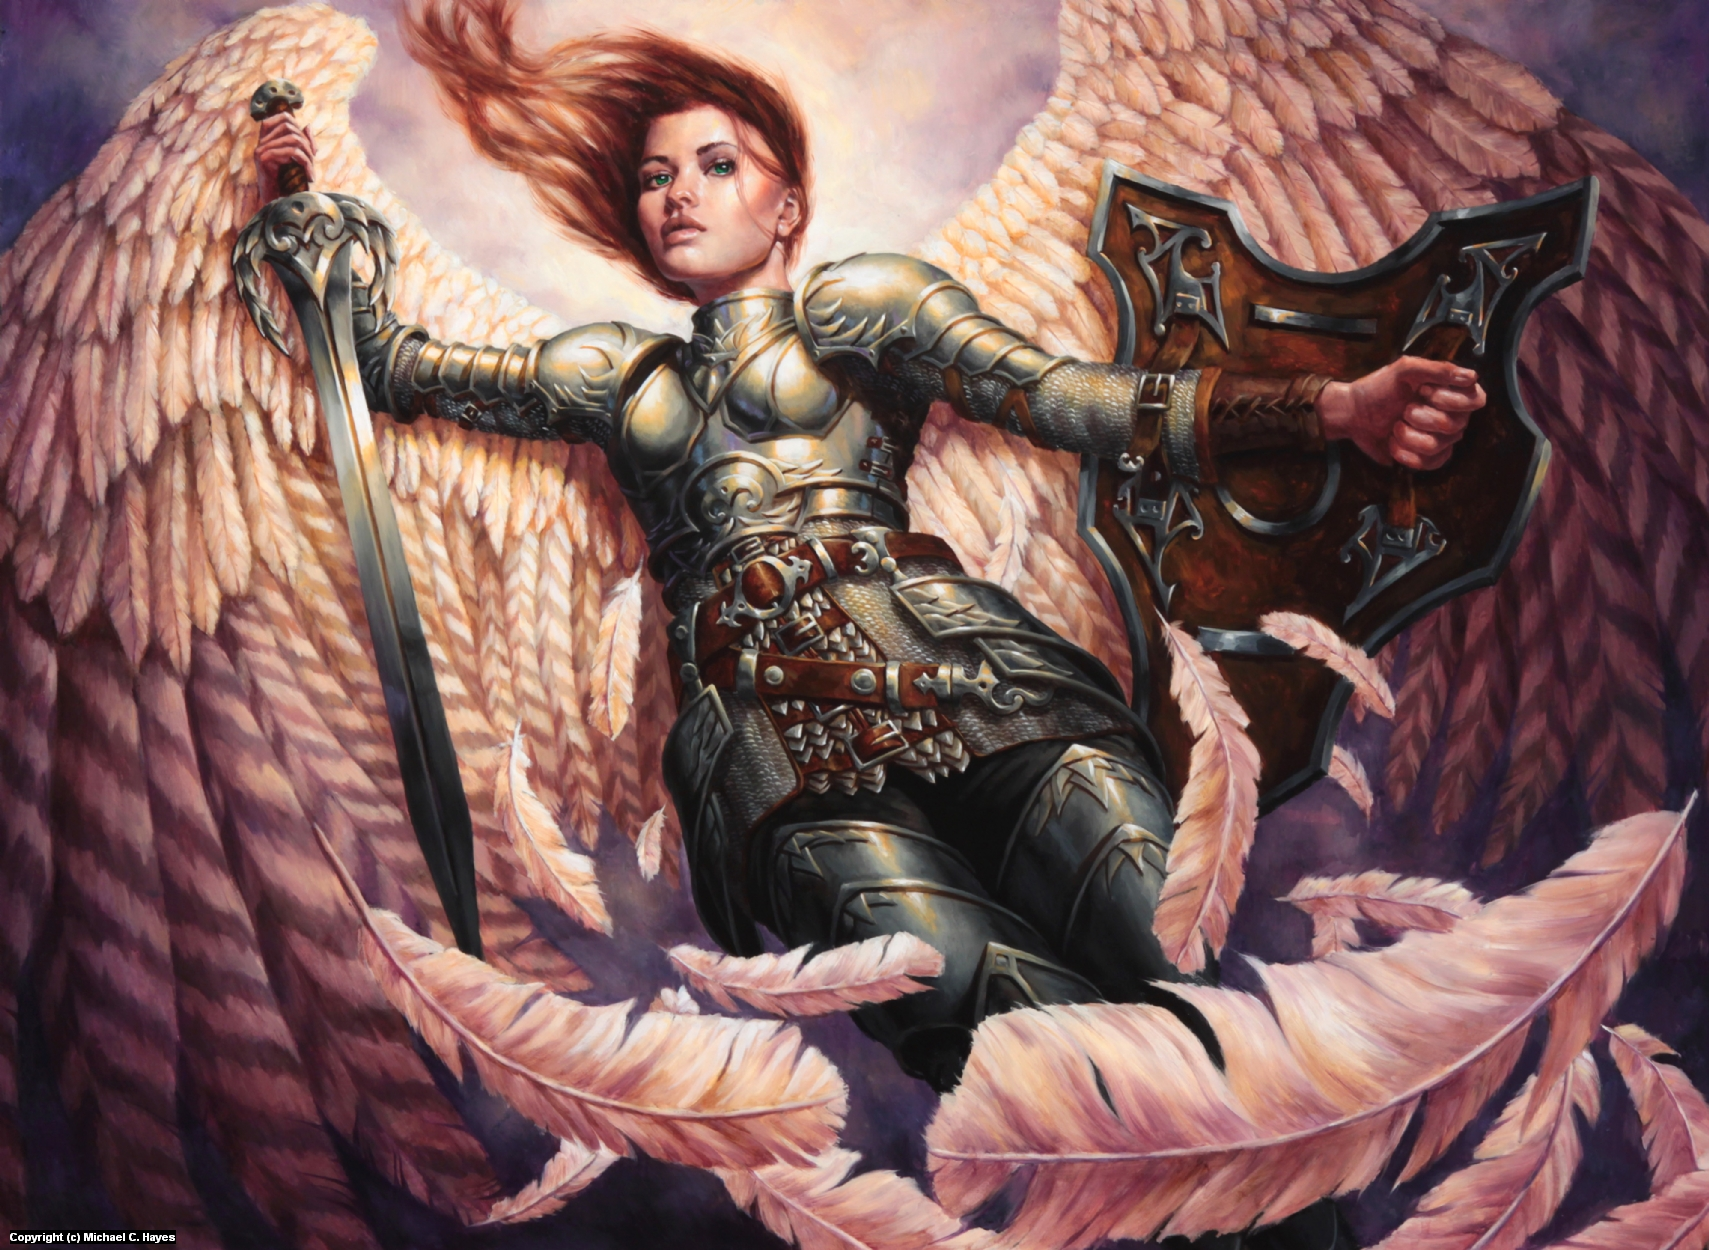 Angelic Accord Artwork by Michael C. Hayes